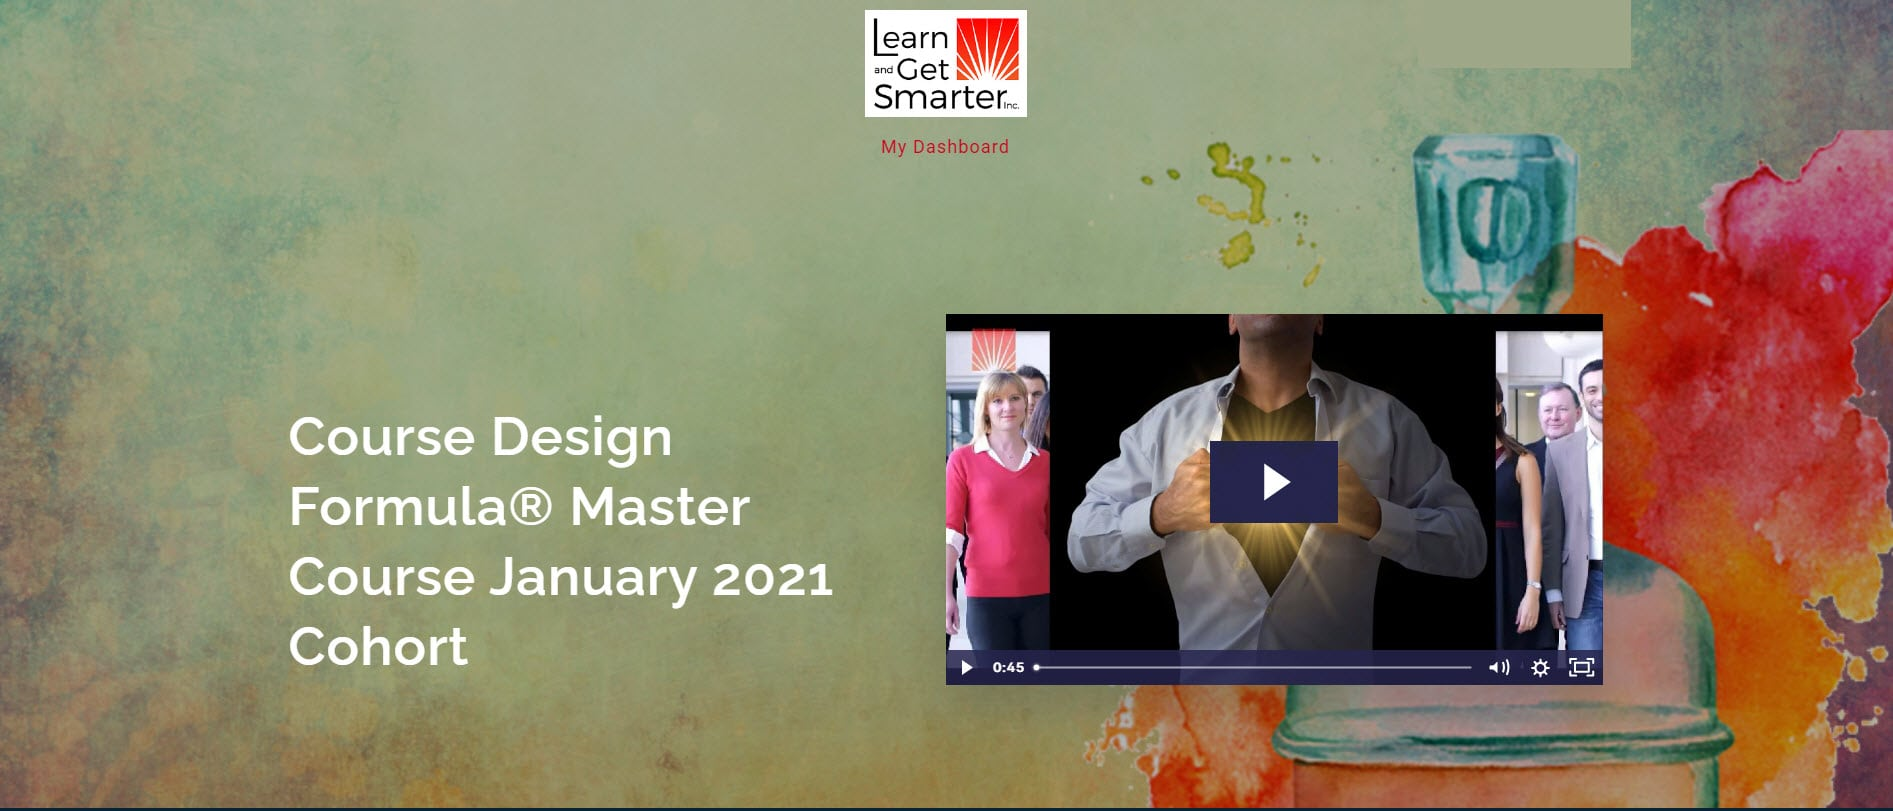 Course Design Formula® Master Course landing page screenshot